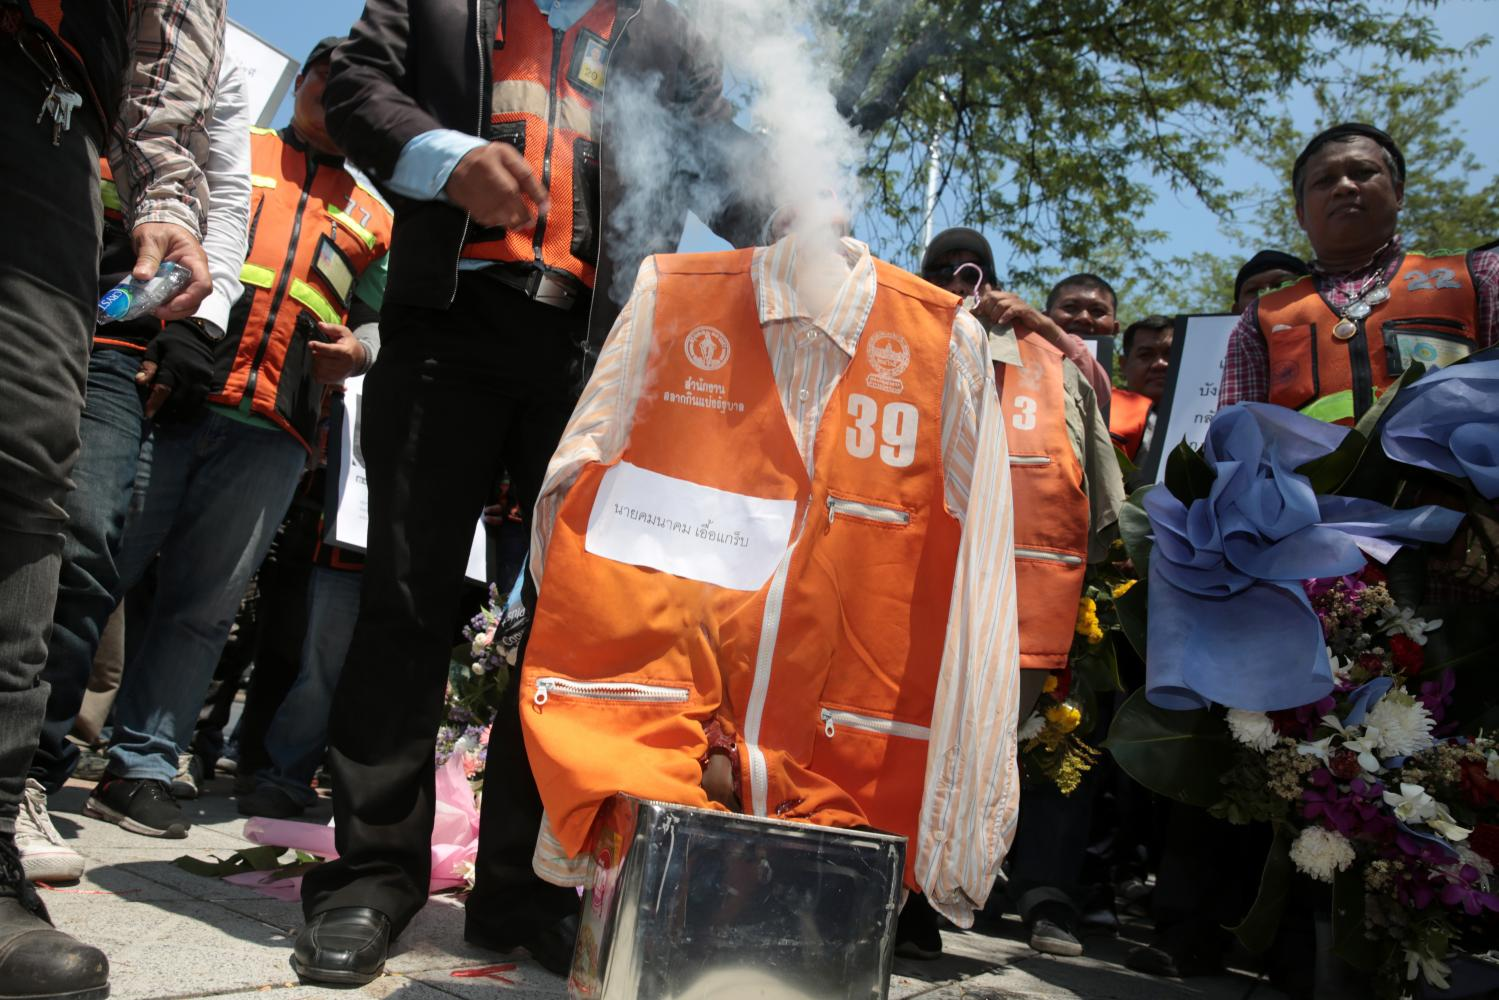 Taxi motorcyclists set a vest alight yesterday during a protest against app-based ride-hailing services at the Transport Ministry. Registered drivers wear an orange vest with the district name and a registration number. Chanat Katanyu